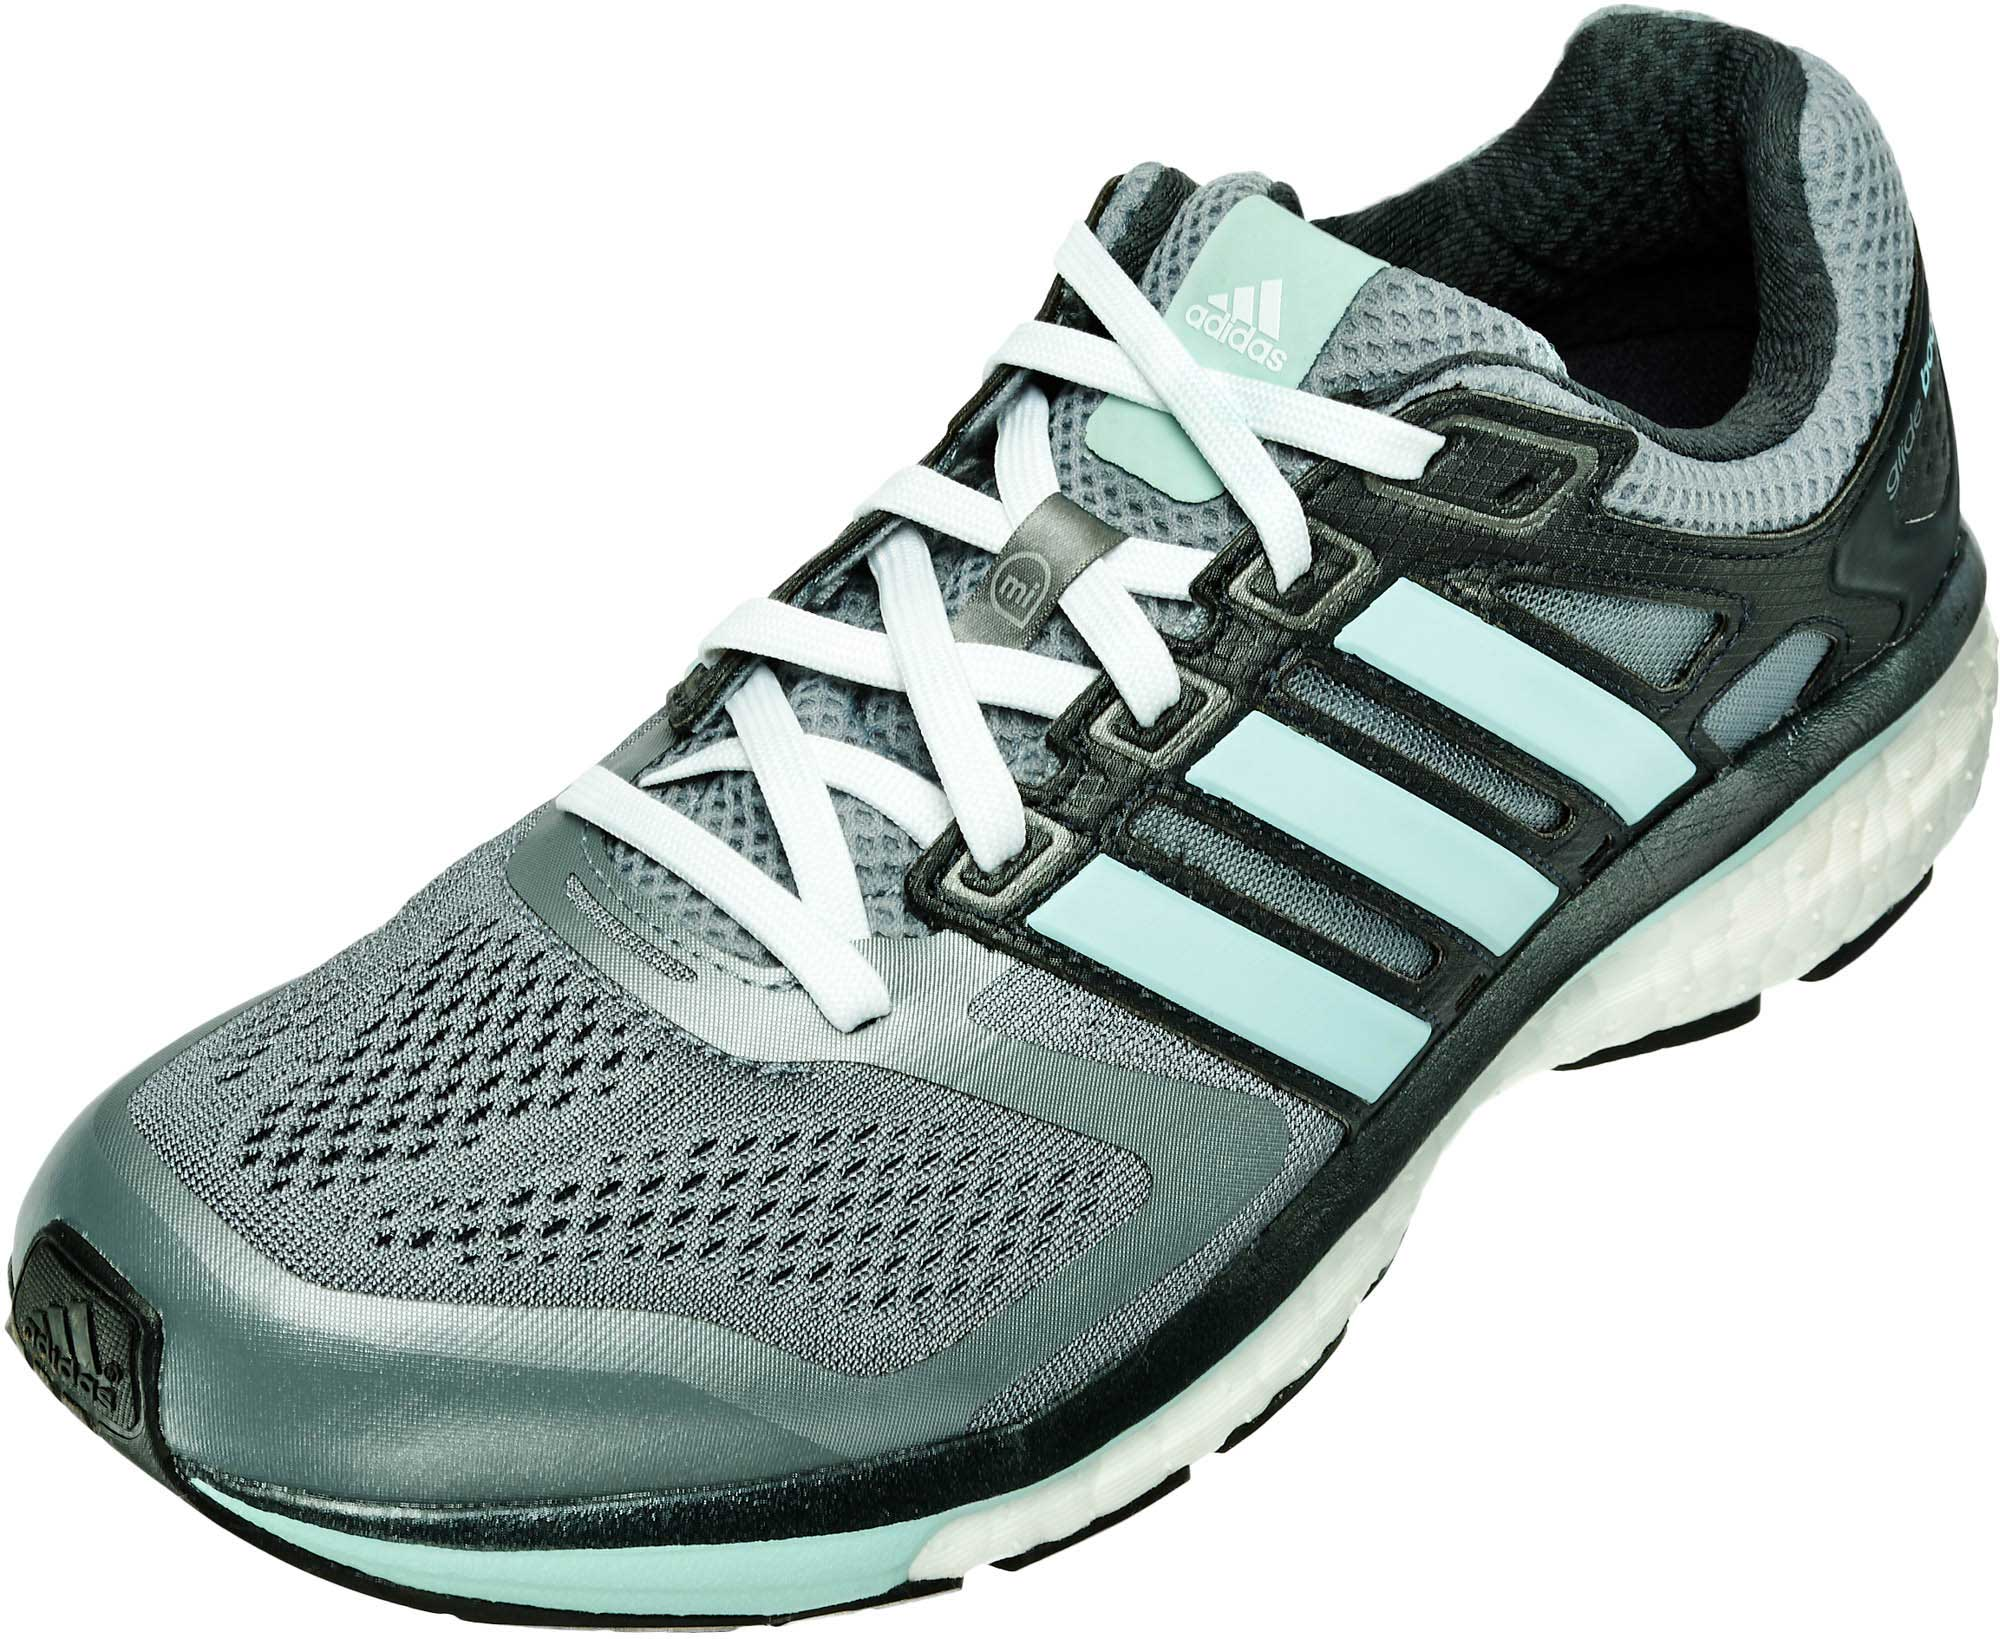 a552ee2ab7c40 adidas Women s Supernova Glide 6 Boost Running Shoes – Grey Mint